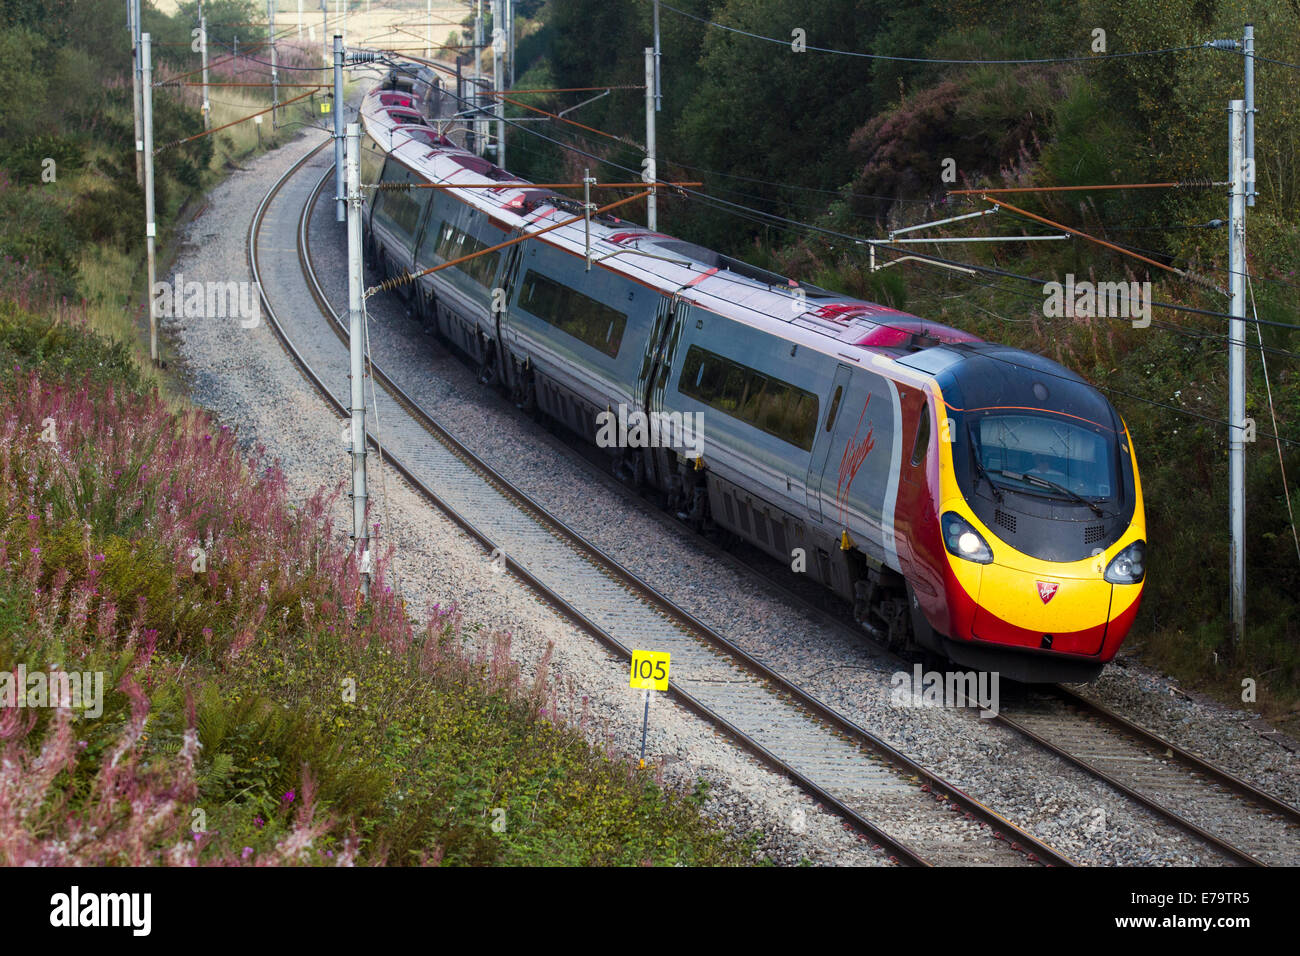 Power lines, and gantries for electric trains   British Railways carriages descending Virgin Voyager Train at Shap, Stock Photo